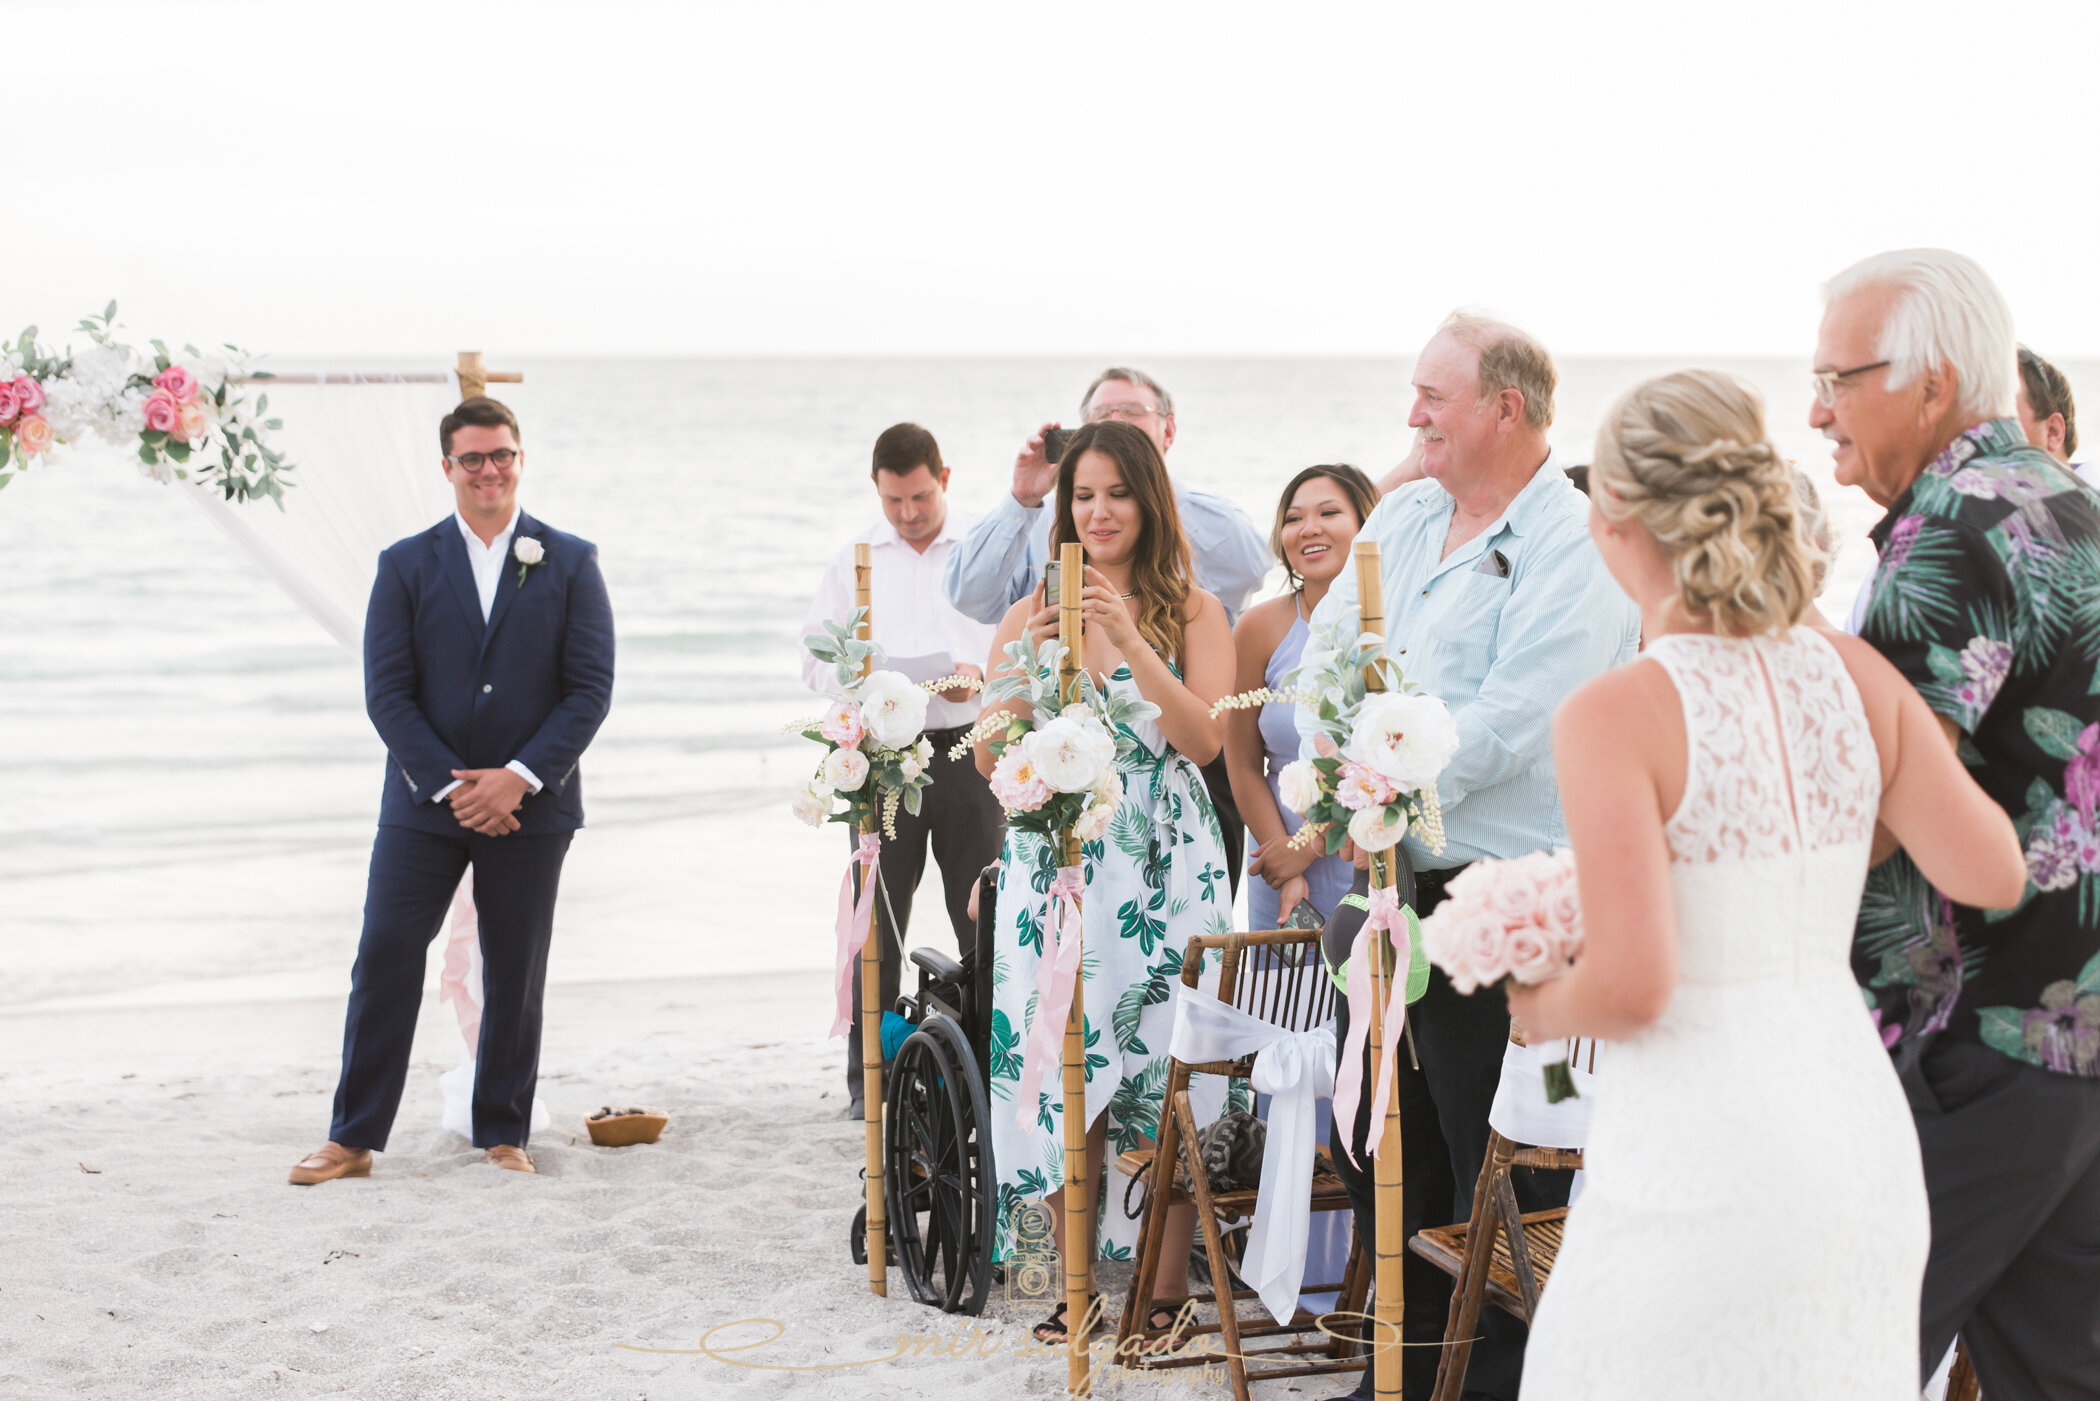 father-walking-bride-down-the-aisle, bride-walking-down-the-aisle, grooms-first-look